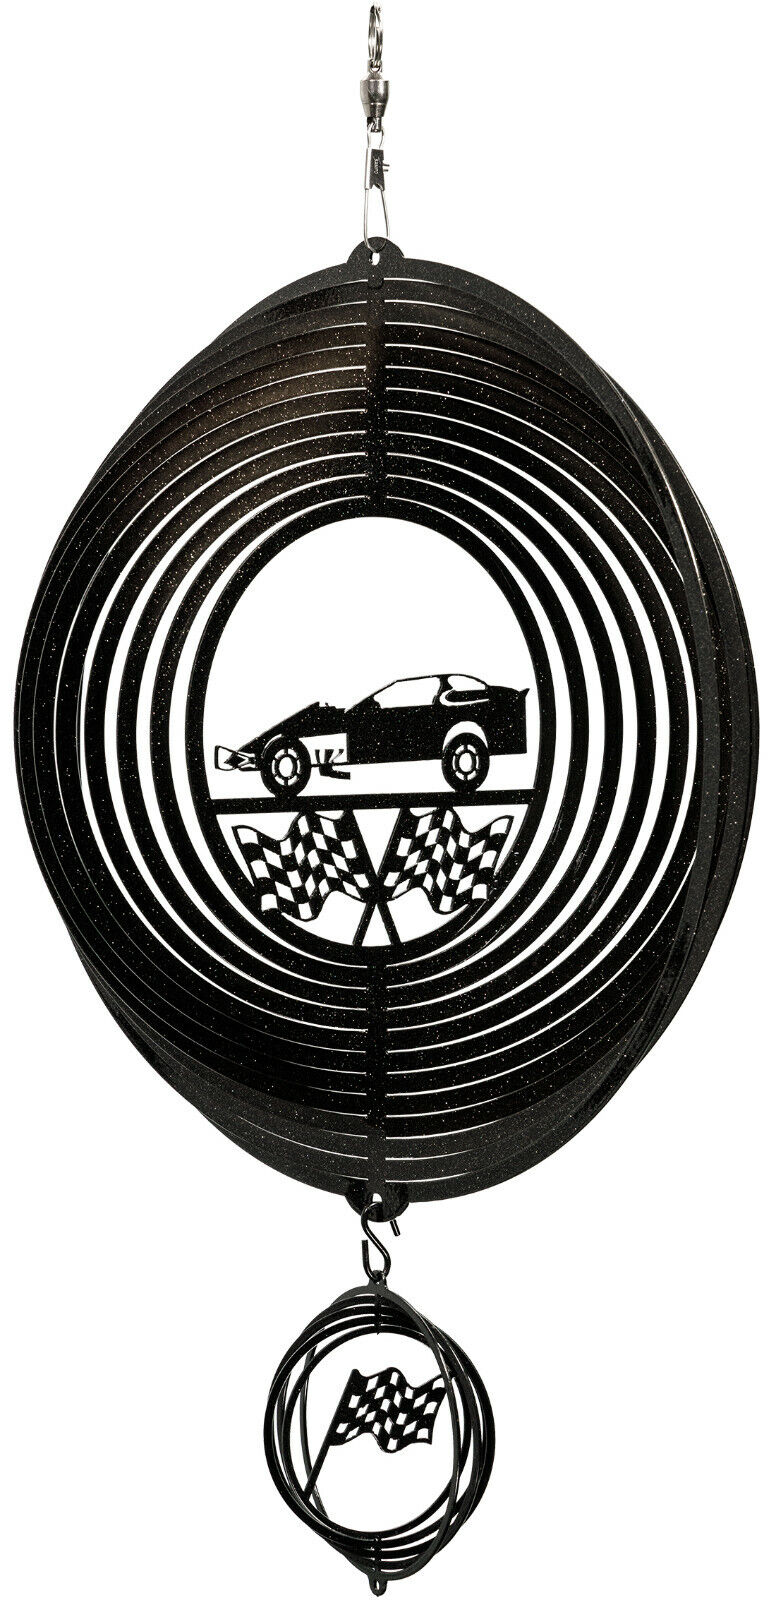 SWEN Products MODIFIED RACE CAR RACING BLACK Swirly COMBO Metal Wind Spinner